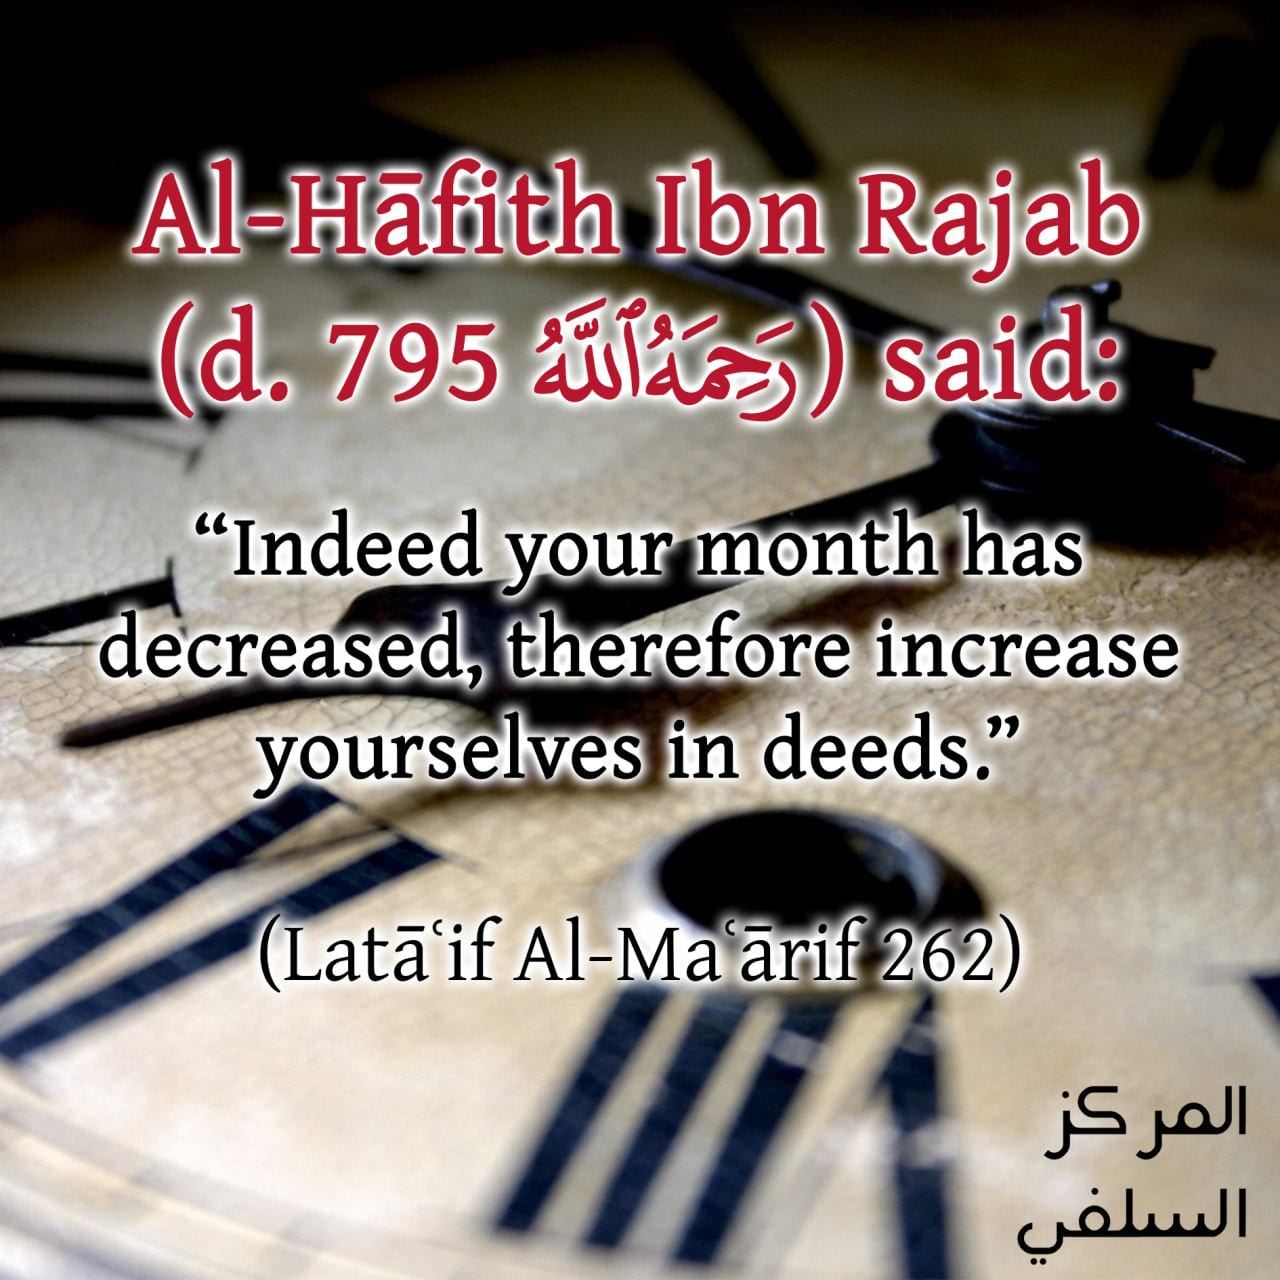 Increase Yourself In Good Deeds- Haafidh Ibn Rajab